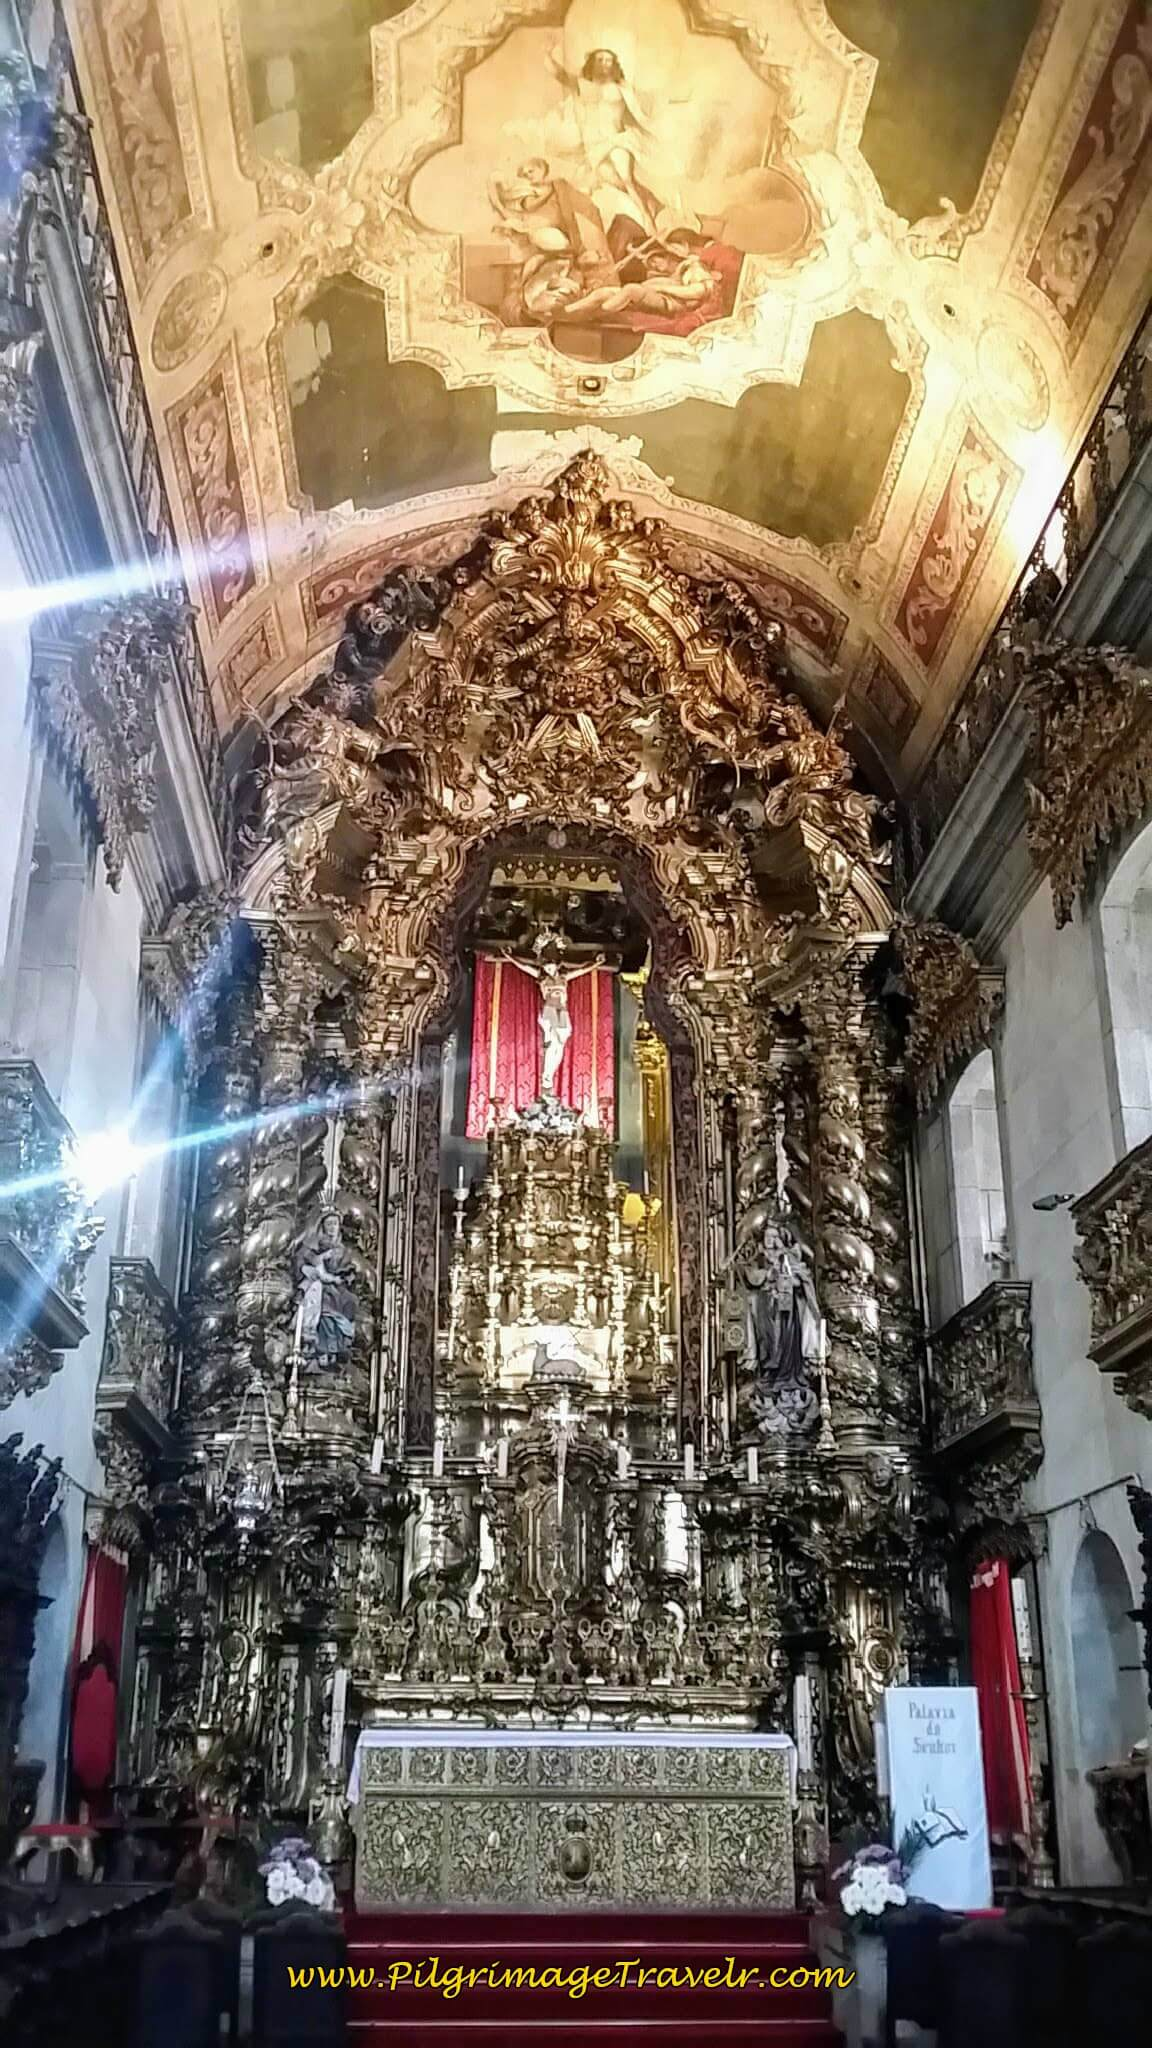 Main Altar of the Igreja do Carmo in Porto, Portugal